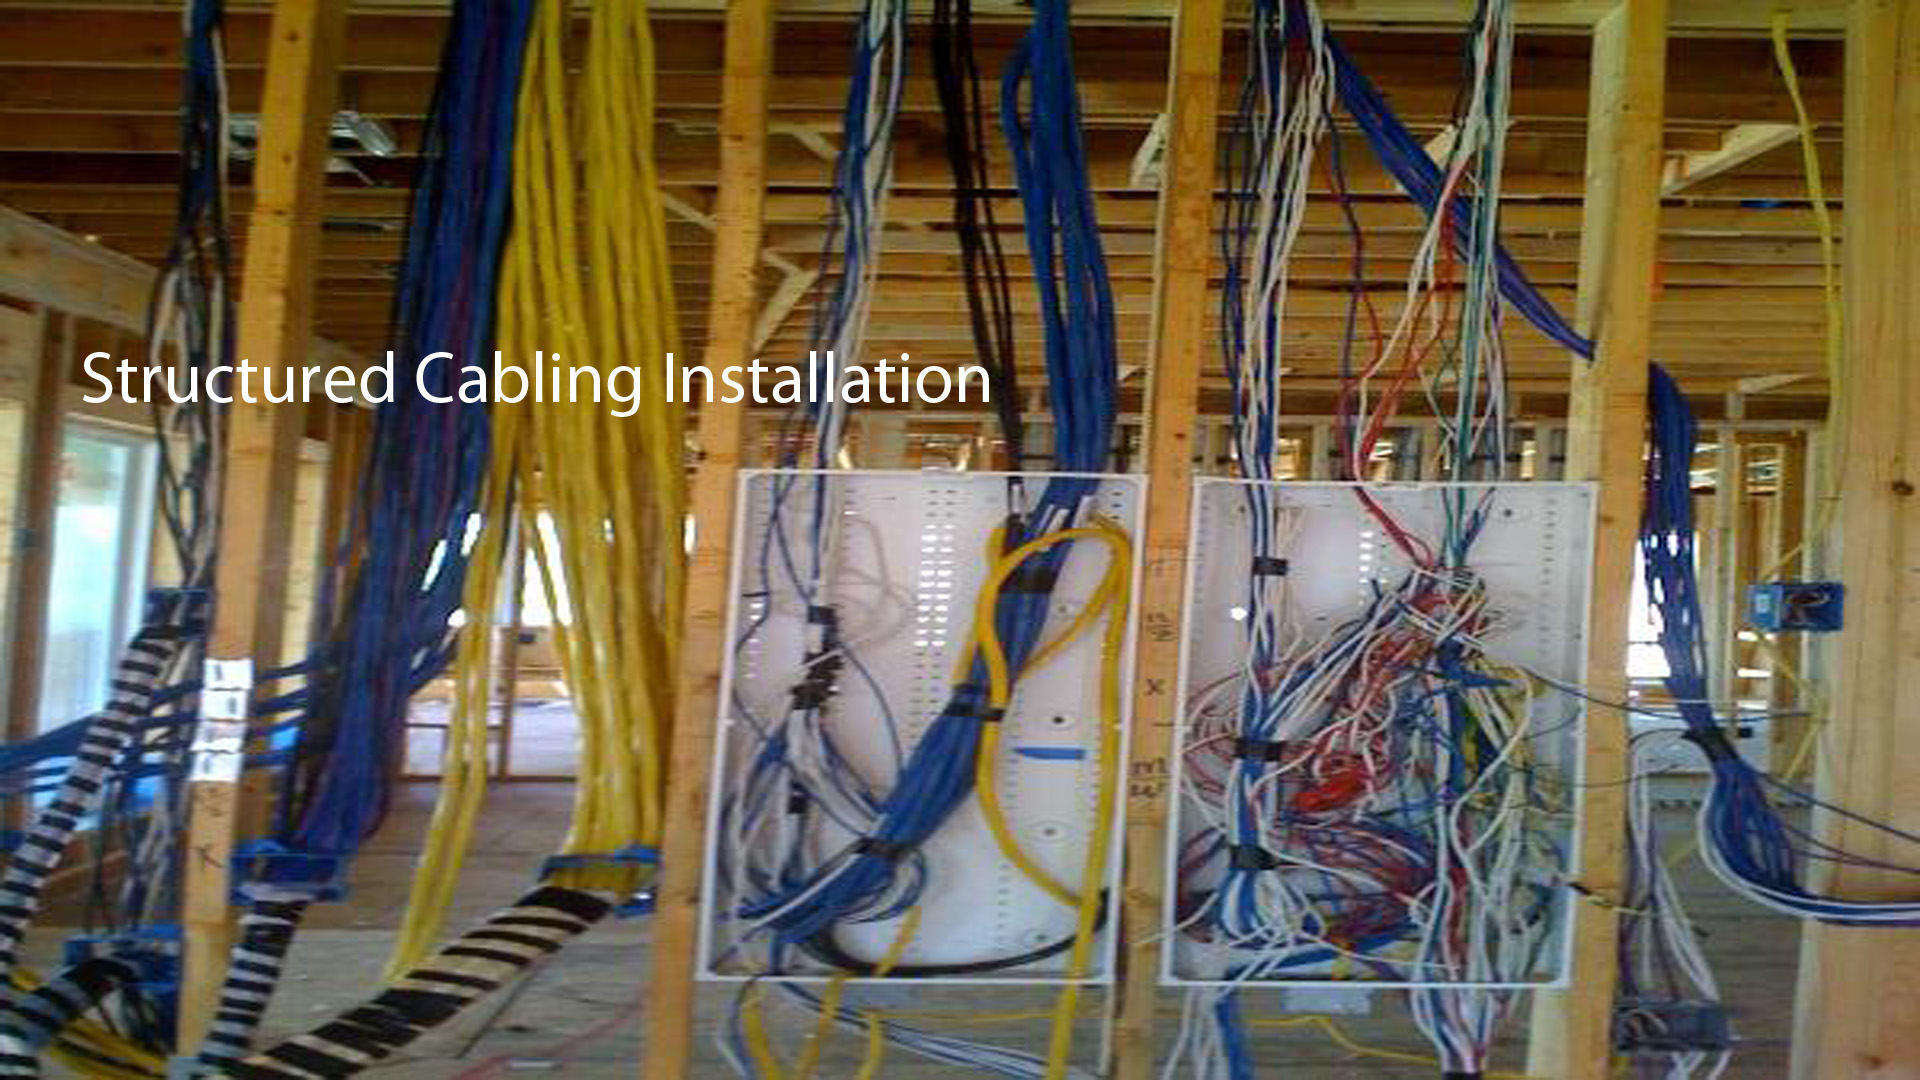 Structured Cabling Installation